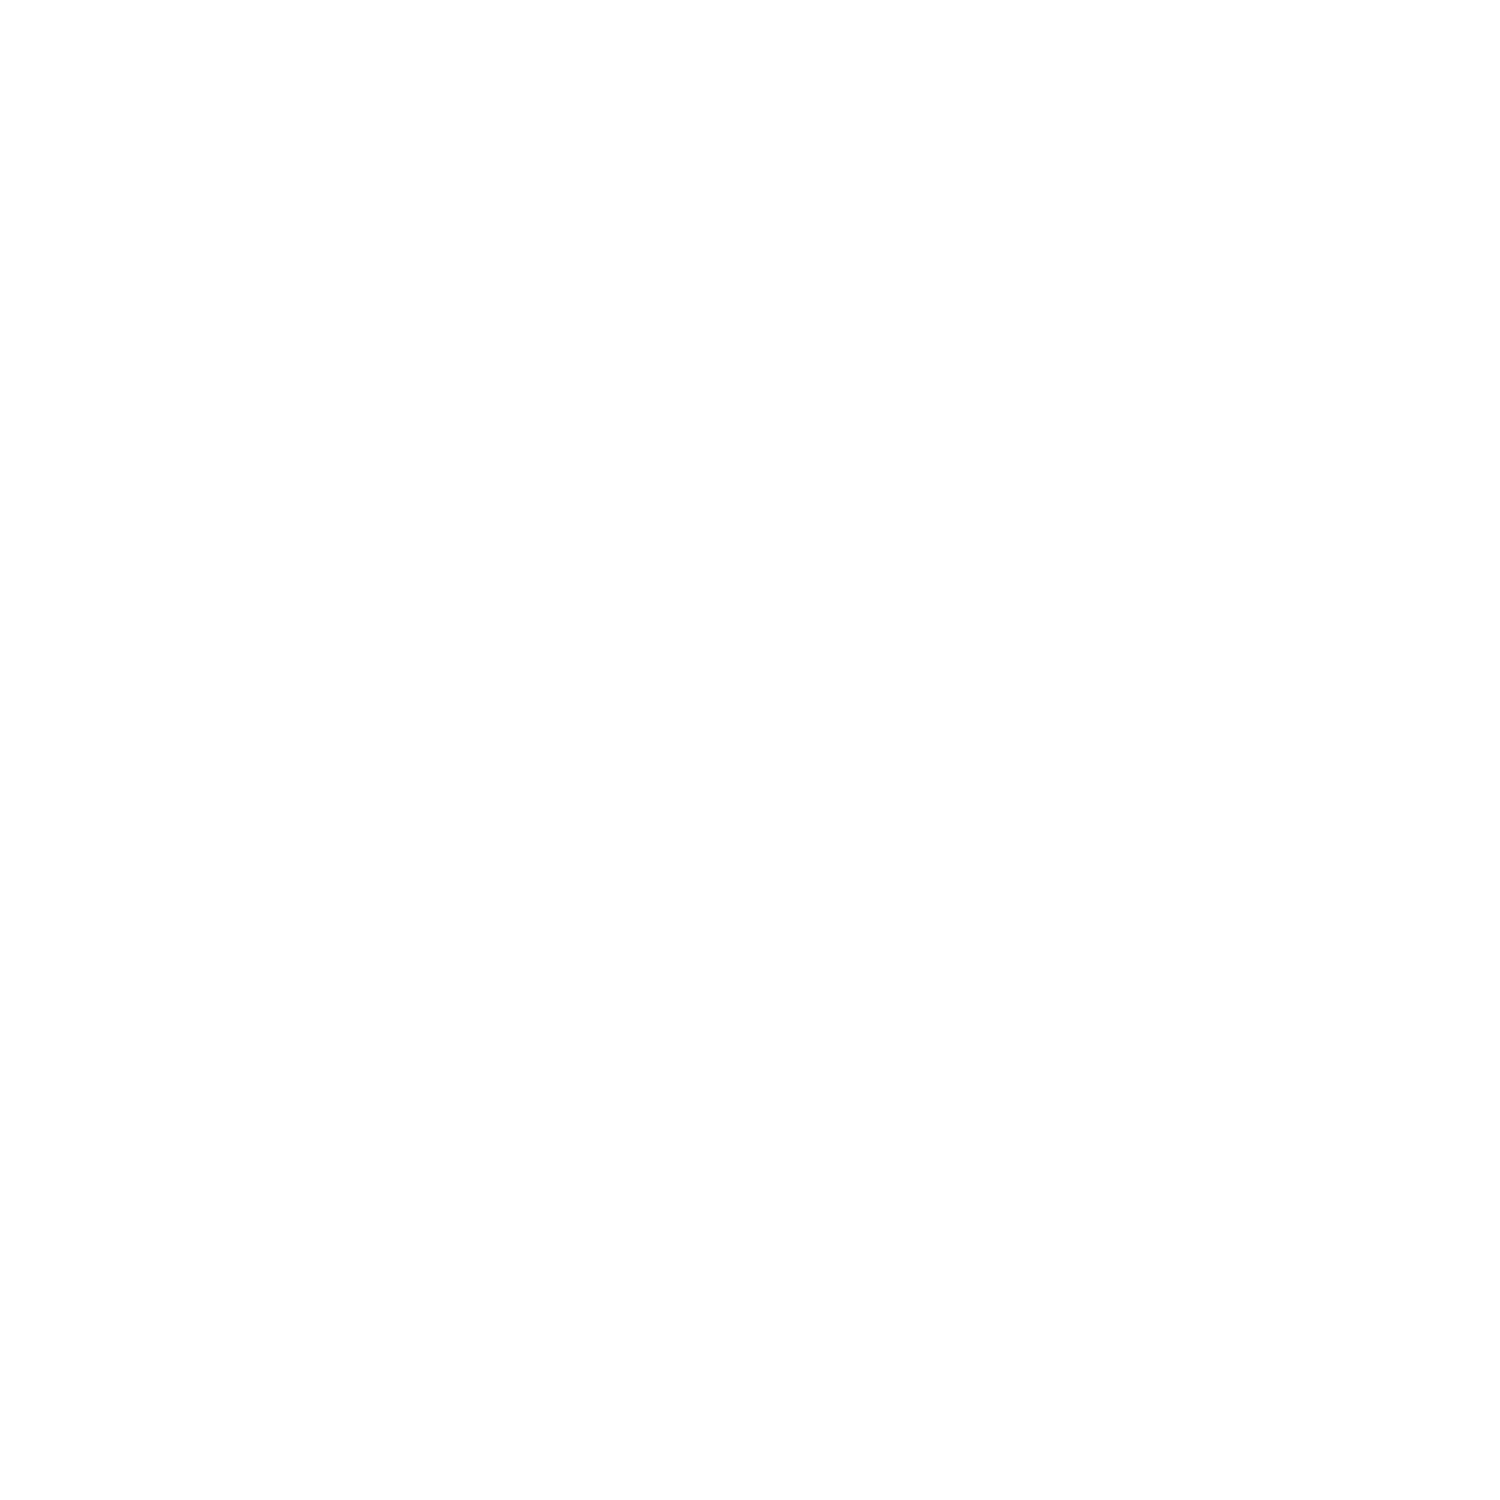 YOGA LOVE PITTSBURGH